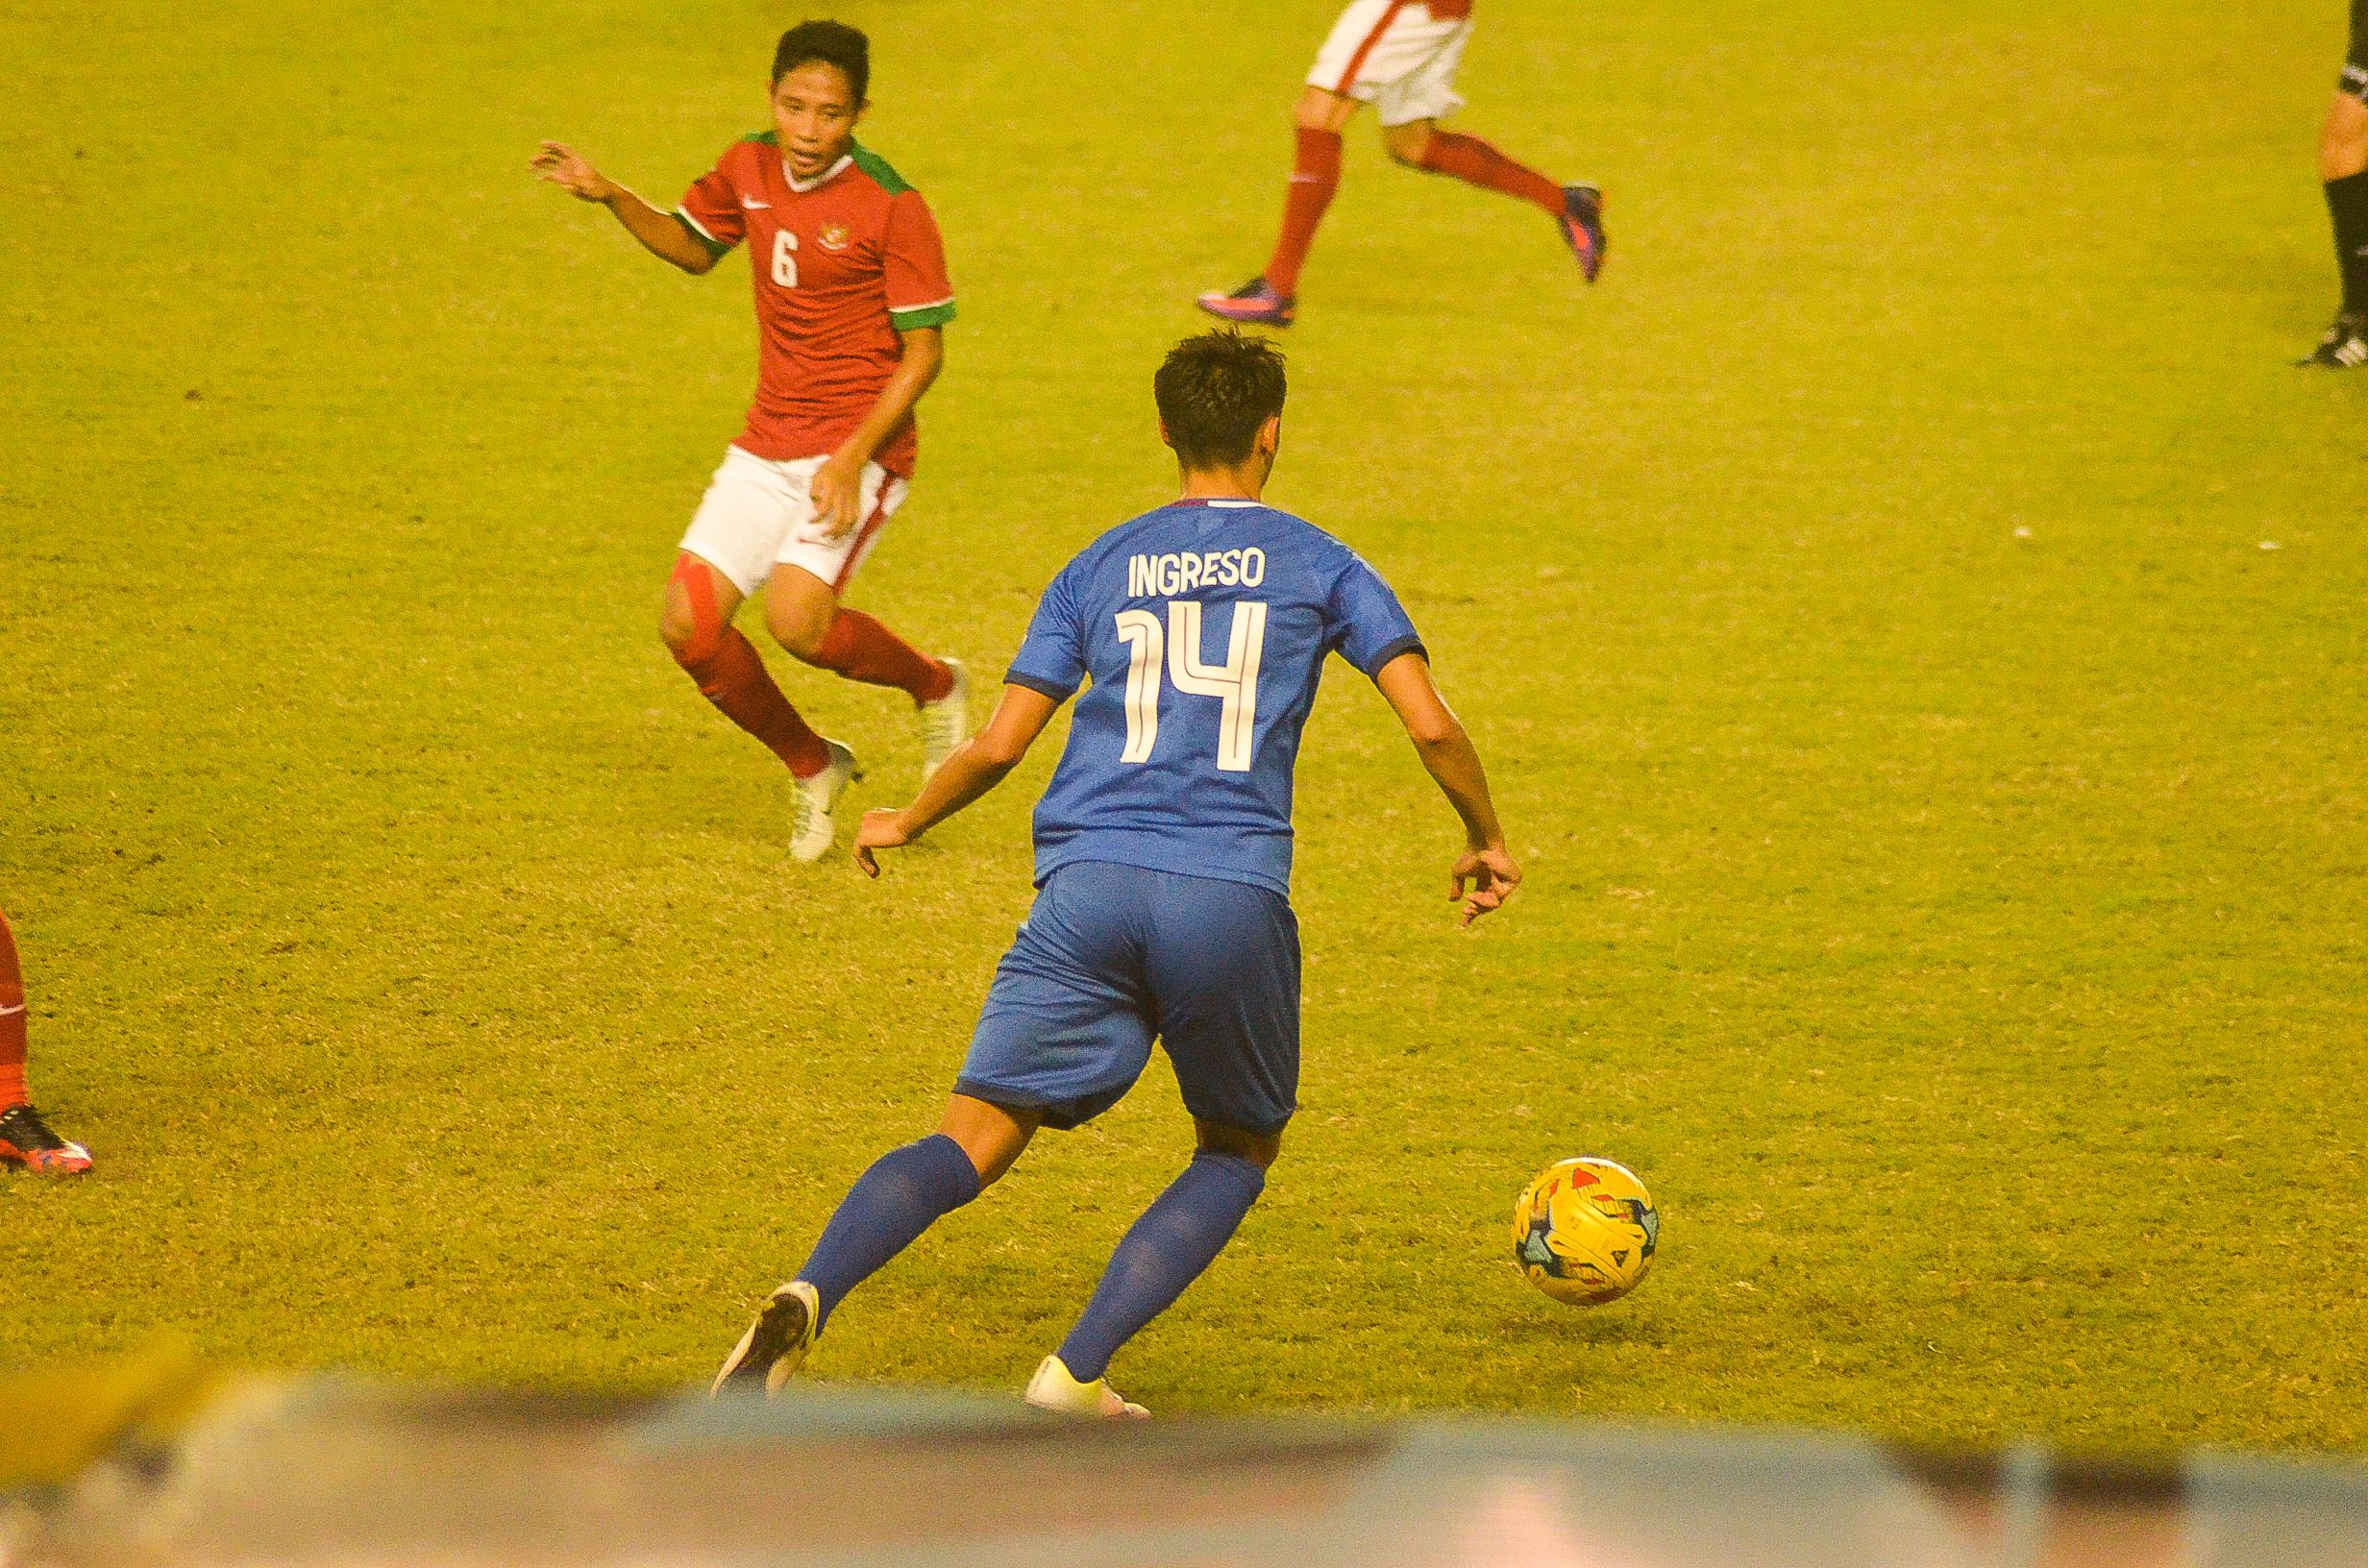 AFF Suzuki Cup 2016: Philippines vs Indonesia photos